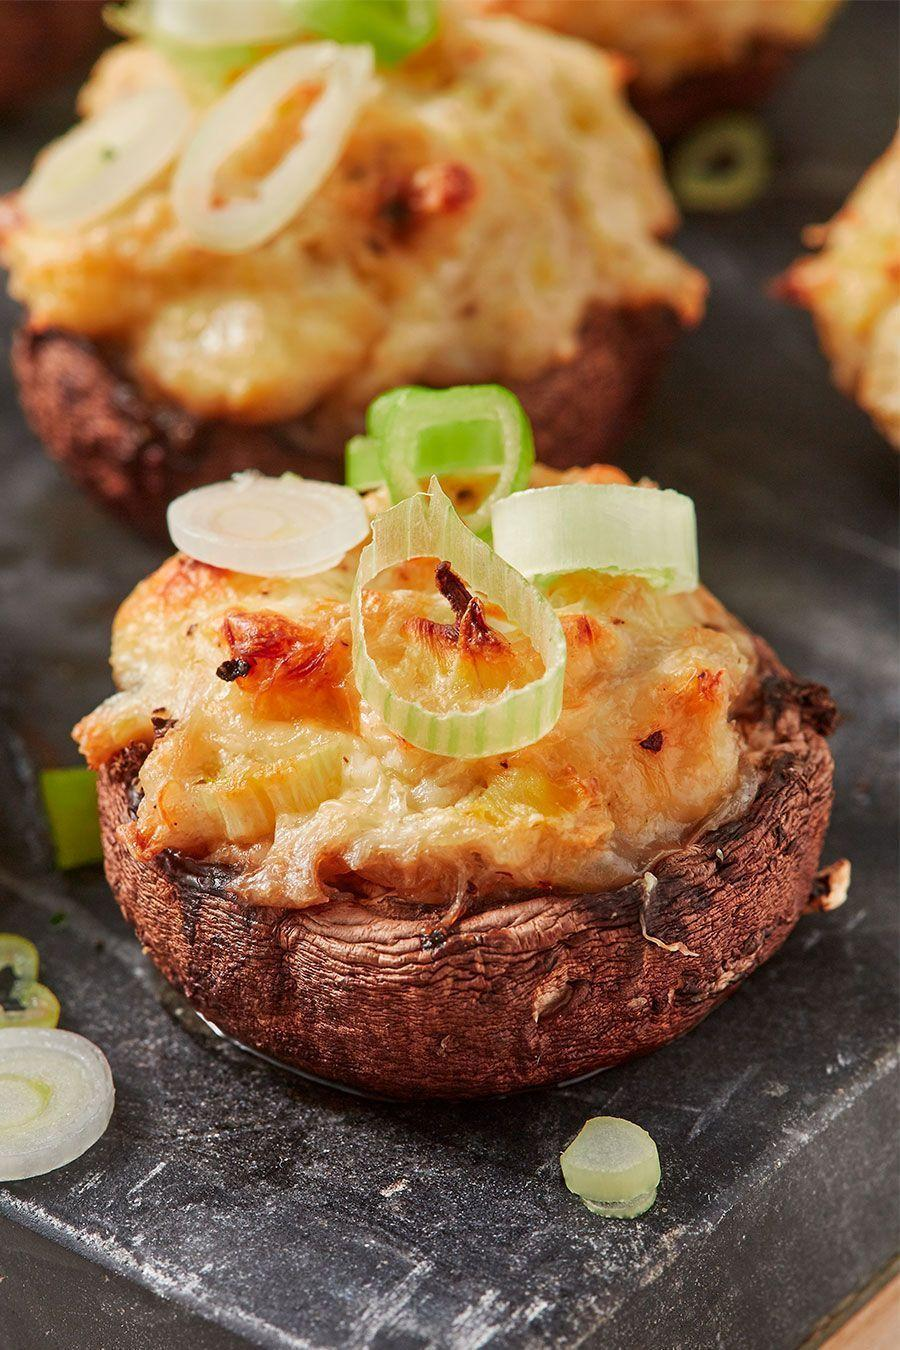 """<p>This recipe is irresistible with the addition of sweet, tender crab, fresh spring onions, and rich cream cheese.</p><p>Get the <a href=""""https://www.delish.com/uk/cooking/recipes/a32978049/crab-artichoke-stuffed-mushrooms-recipe/"""" rel=""""nofollow noopener"""" target=""""_blank"""" data-ylk=""""slk:Crab Artichoke Stuffed Mushrooms"""" class=""""link rapid-noclick-resp"""">Crab Artichoke Stuffed Mushrooms</a> recipe.</p>"""